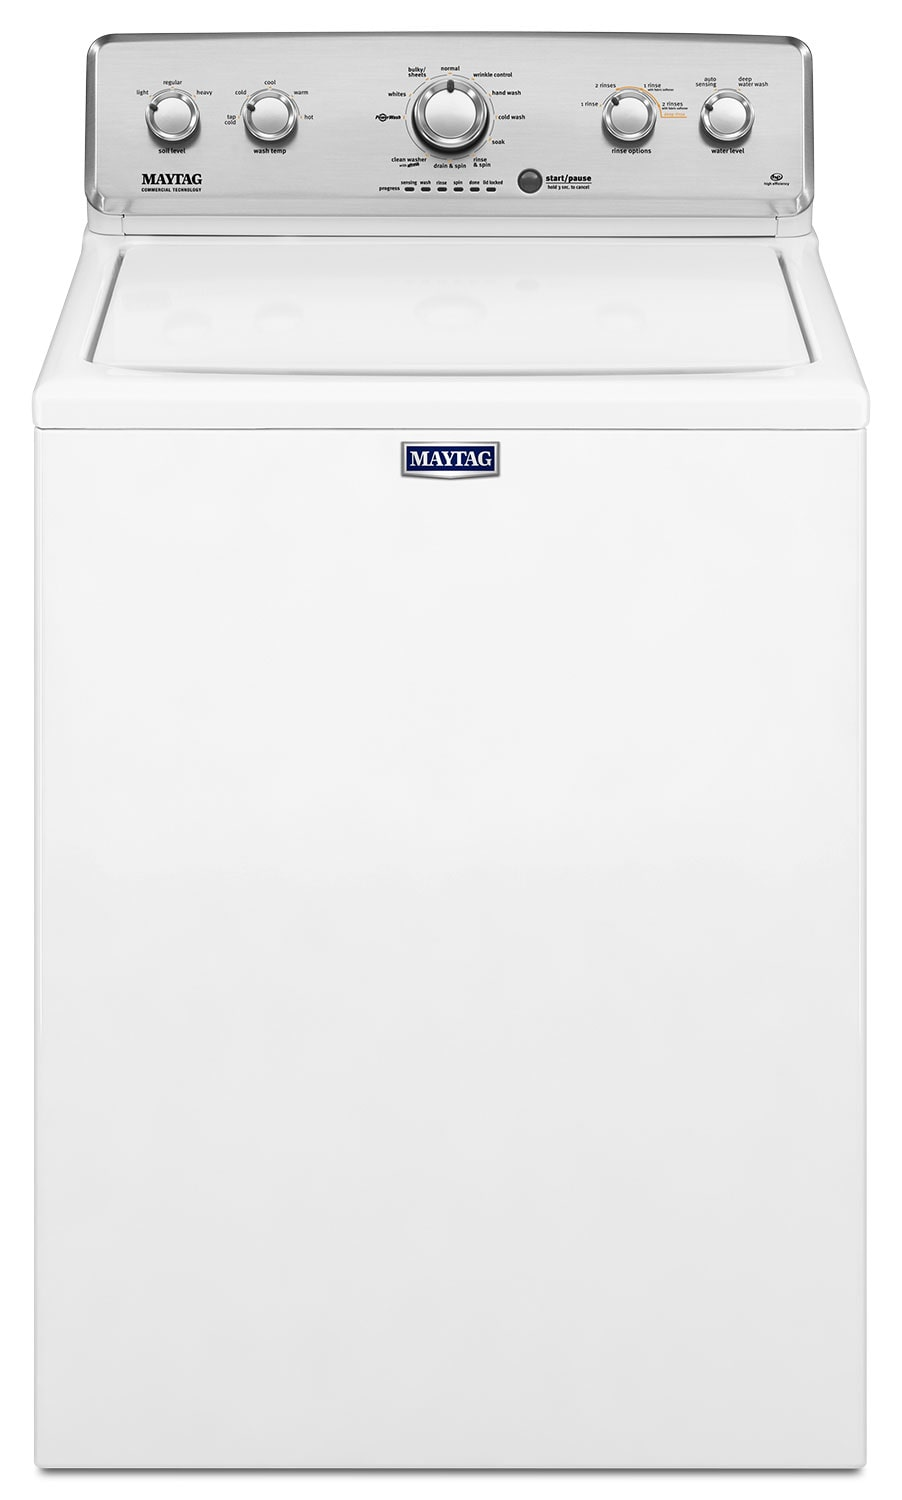 Maytag White Top-Load Washer (4.2 Cu. Ft. IEC) - MVWC416FW